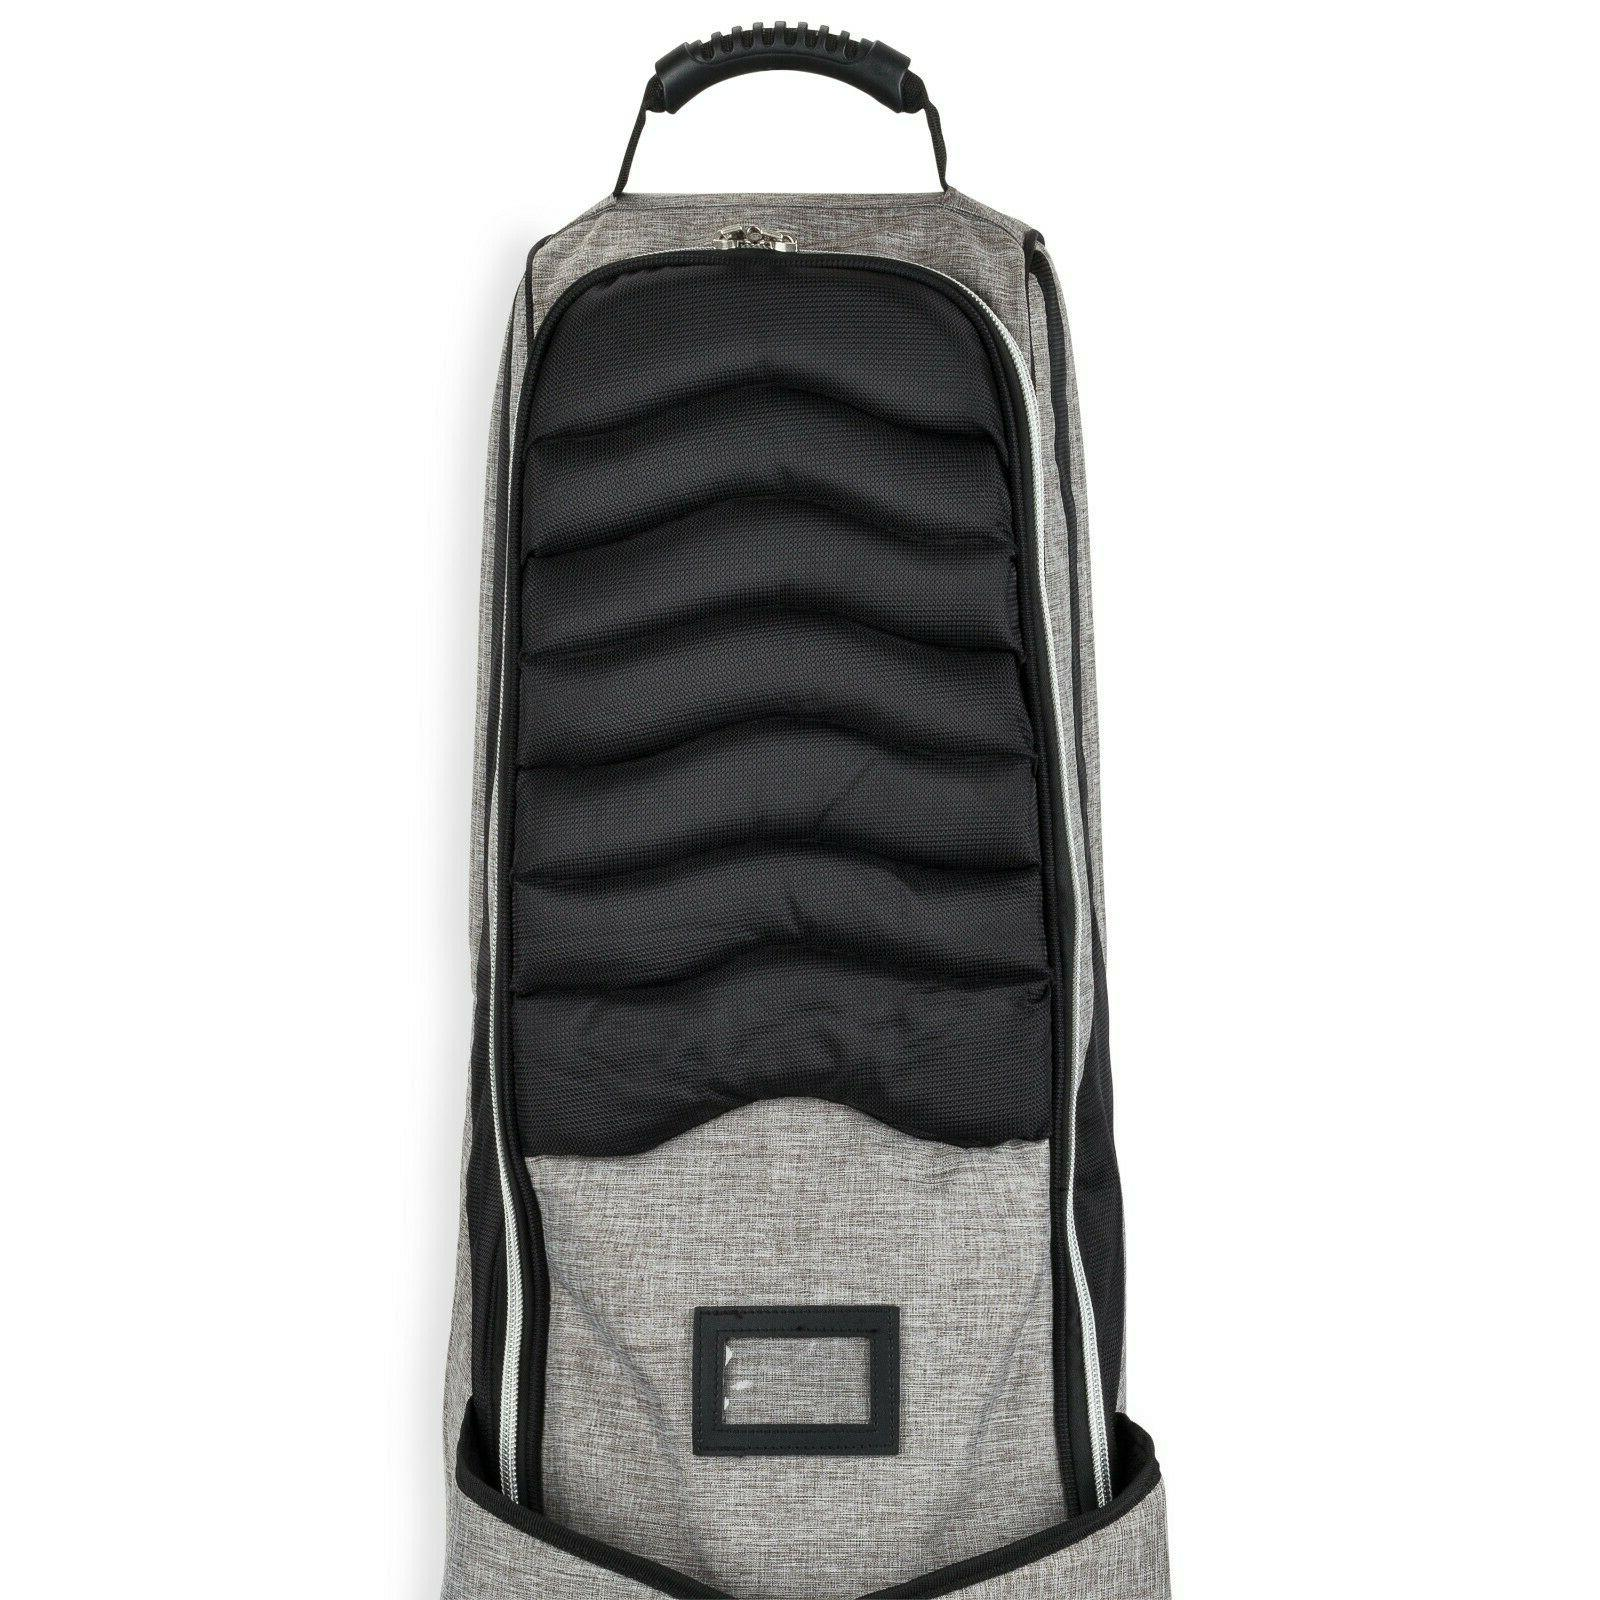 Founders Bag Cover Luggage Padded